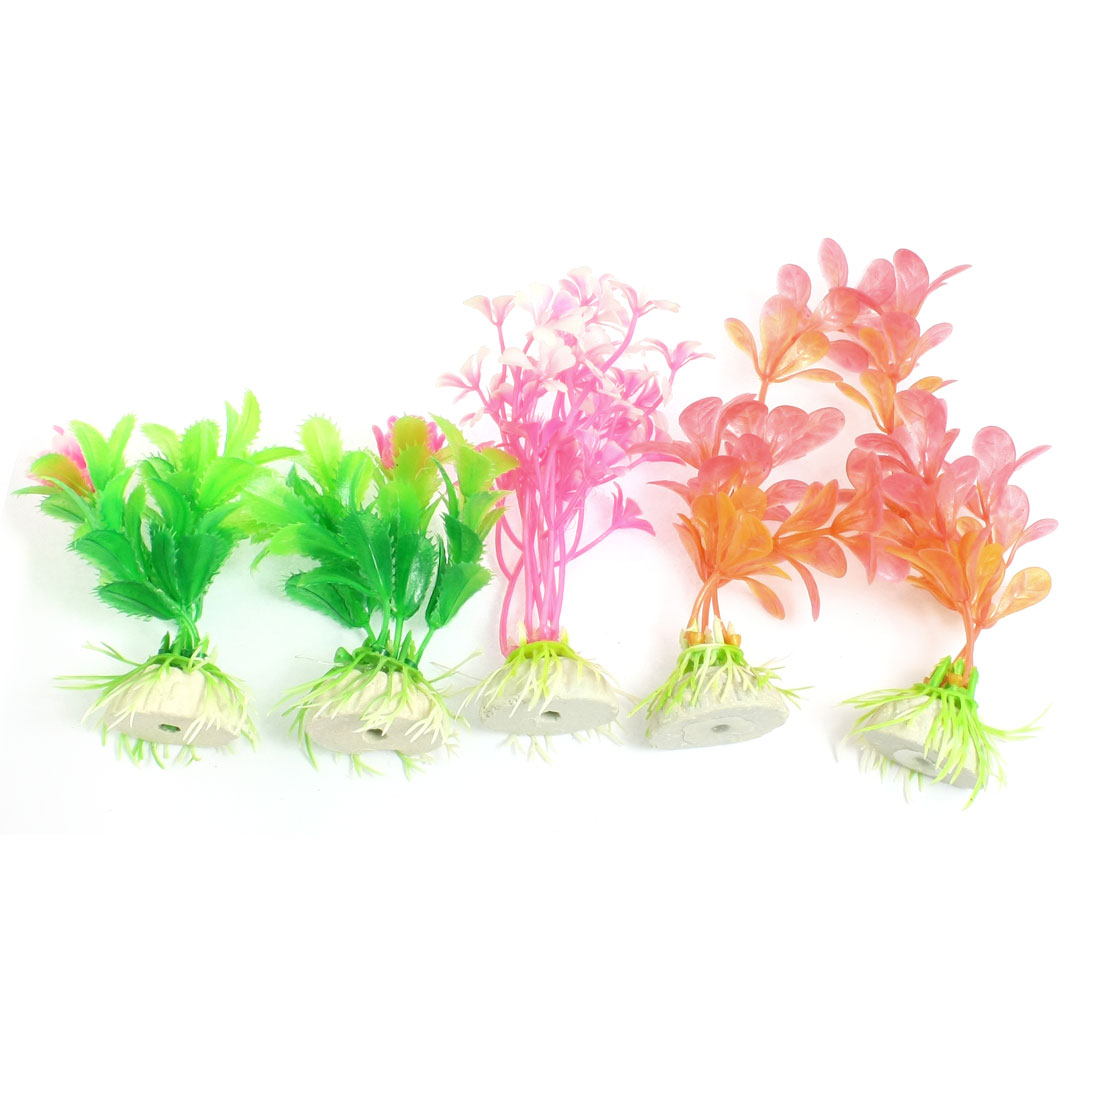 5 Pcs Aquarium Fish Tank Aquatic Grass Plant Colorful 5.1""